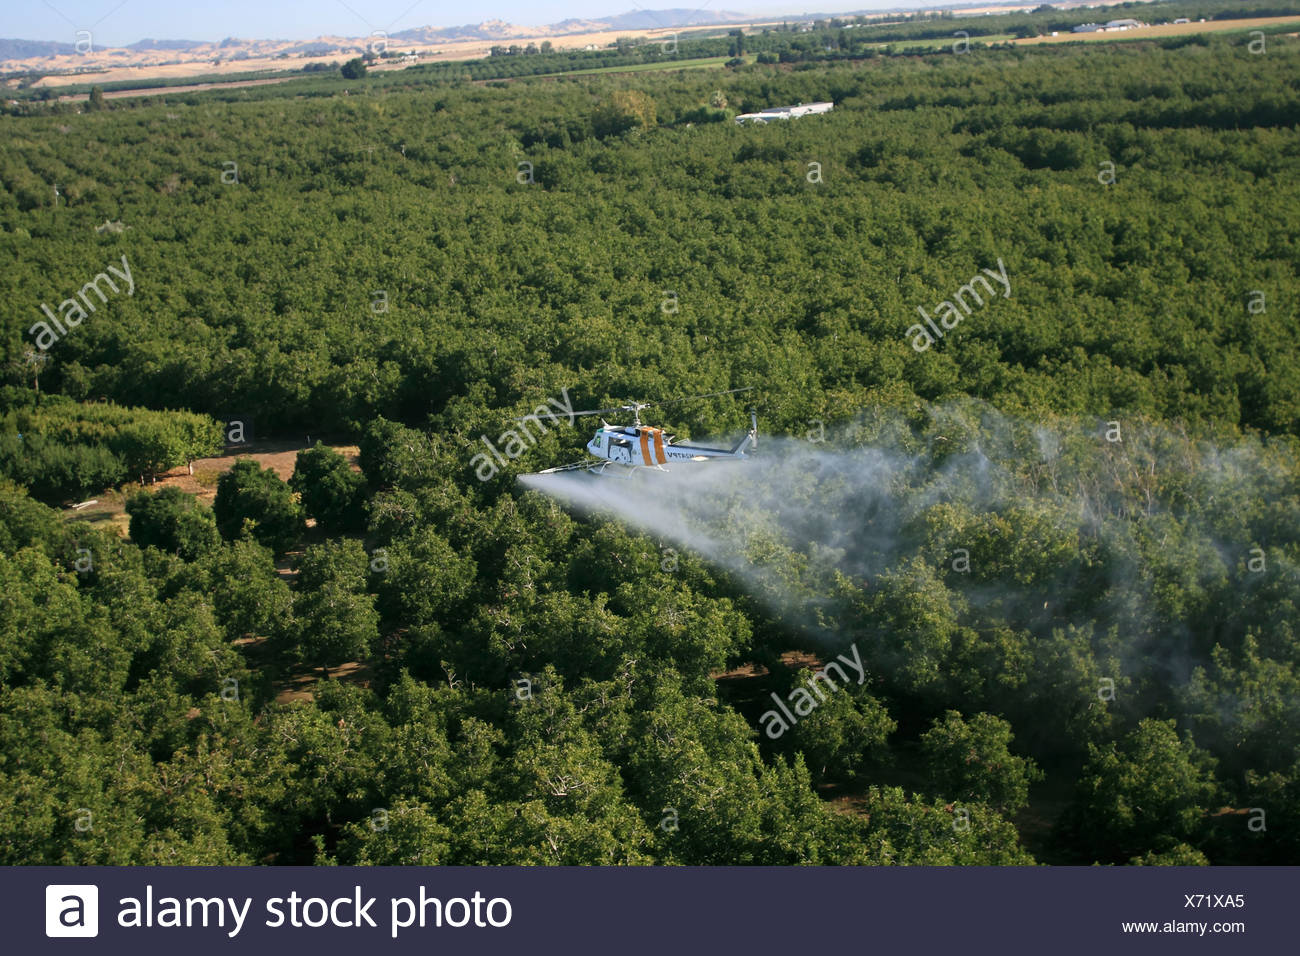 Agriculture - Aerial chemical application by a helicopter over a walnut orchard in late Summer / California, USA. - Stock Image